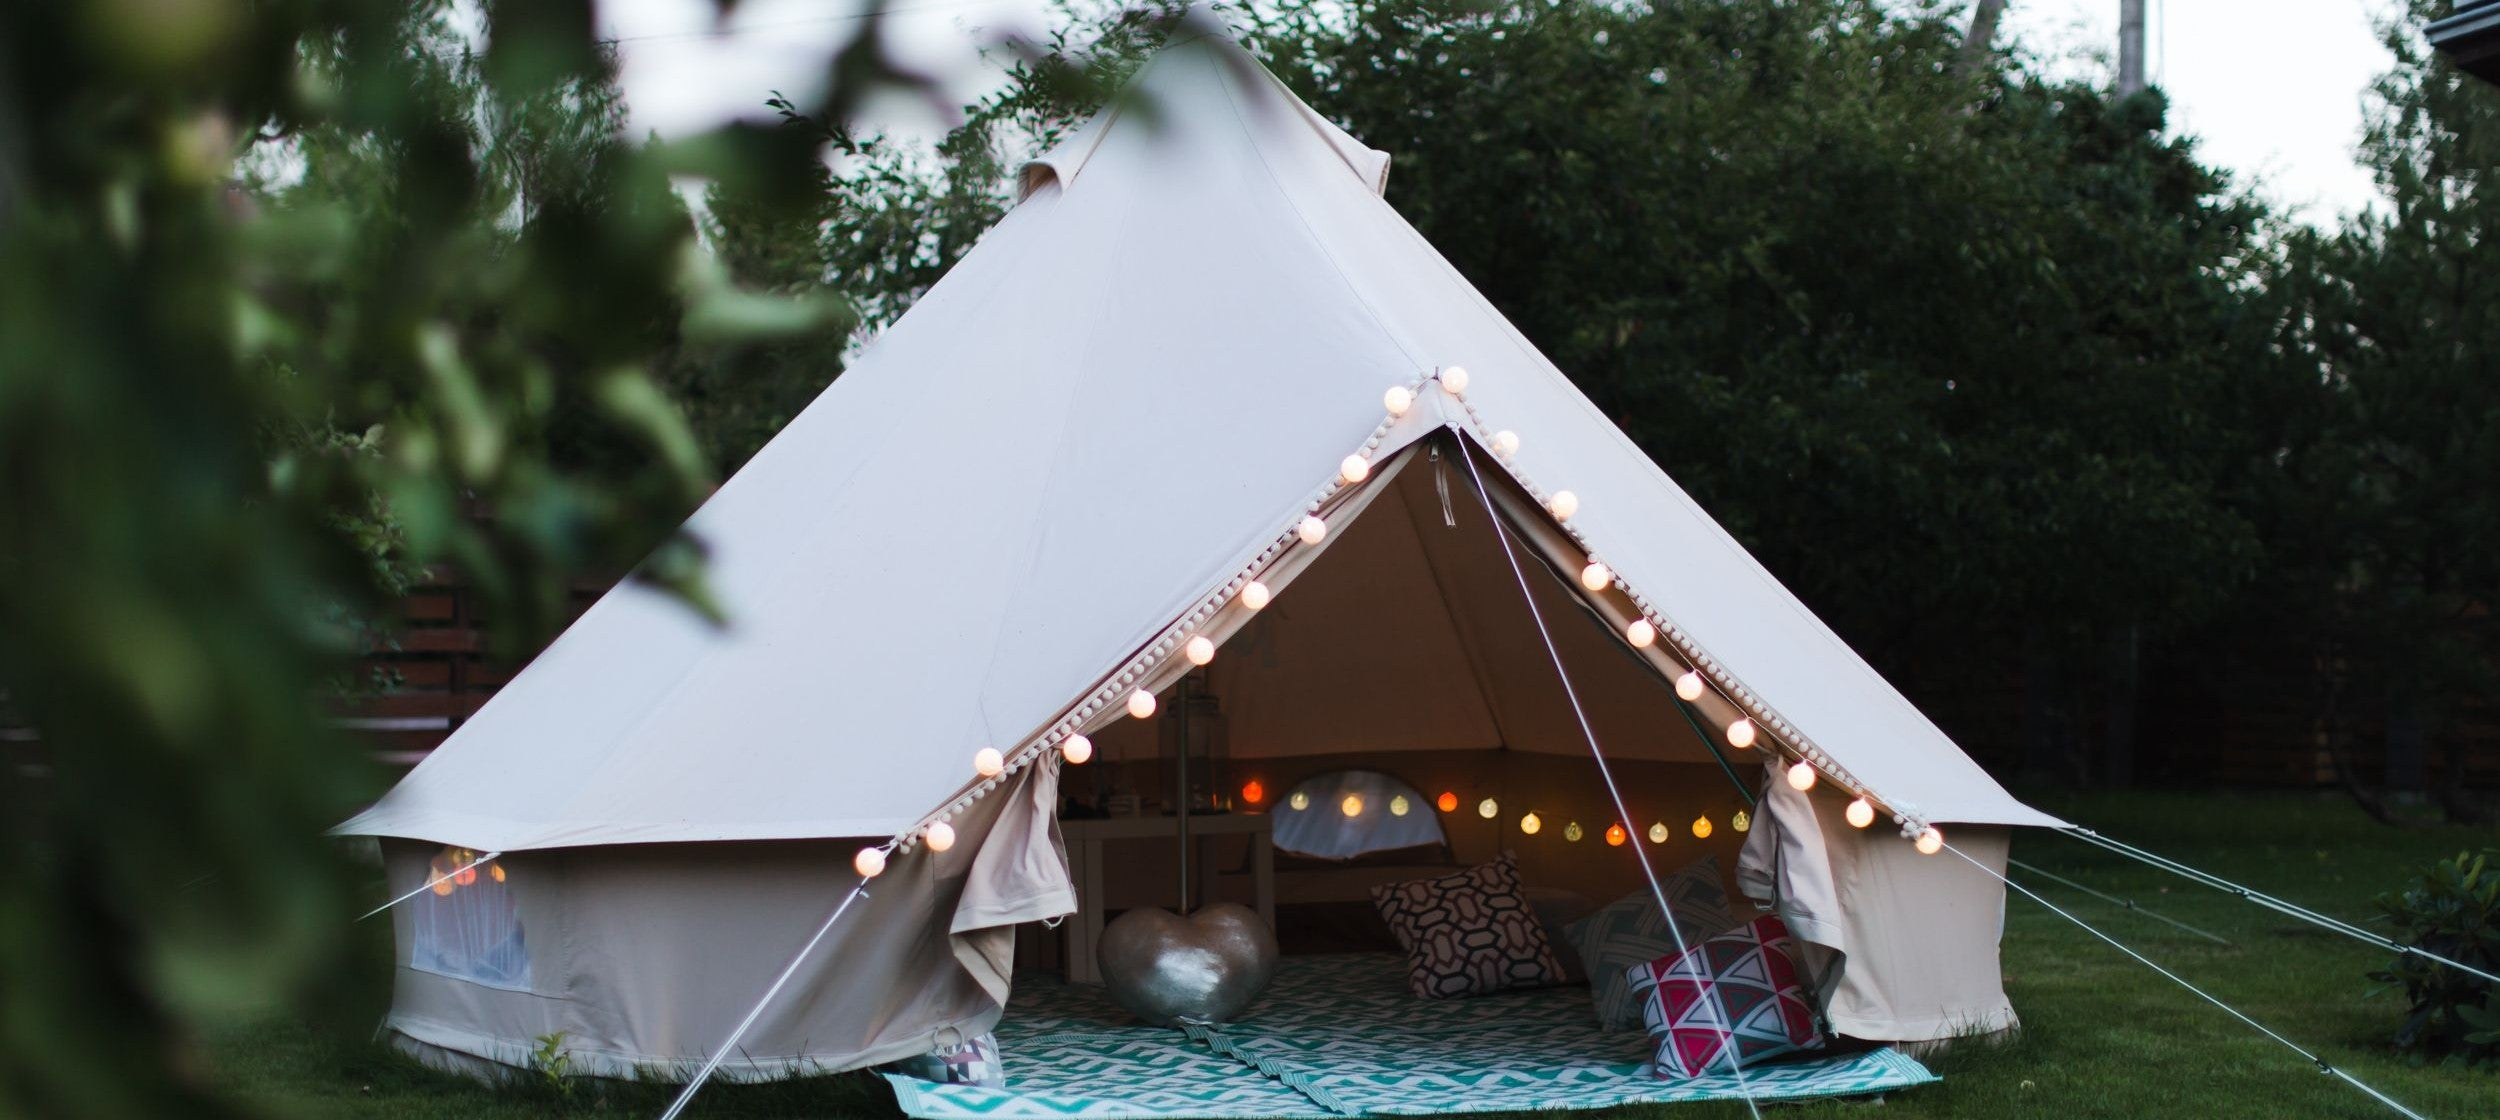 Top 10 Glamping Tents That Will Elevate Your Camping Experience The cascade tent offers a more compact and easily transferable tent. top 10 glamping tents that will elevate